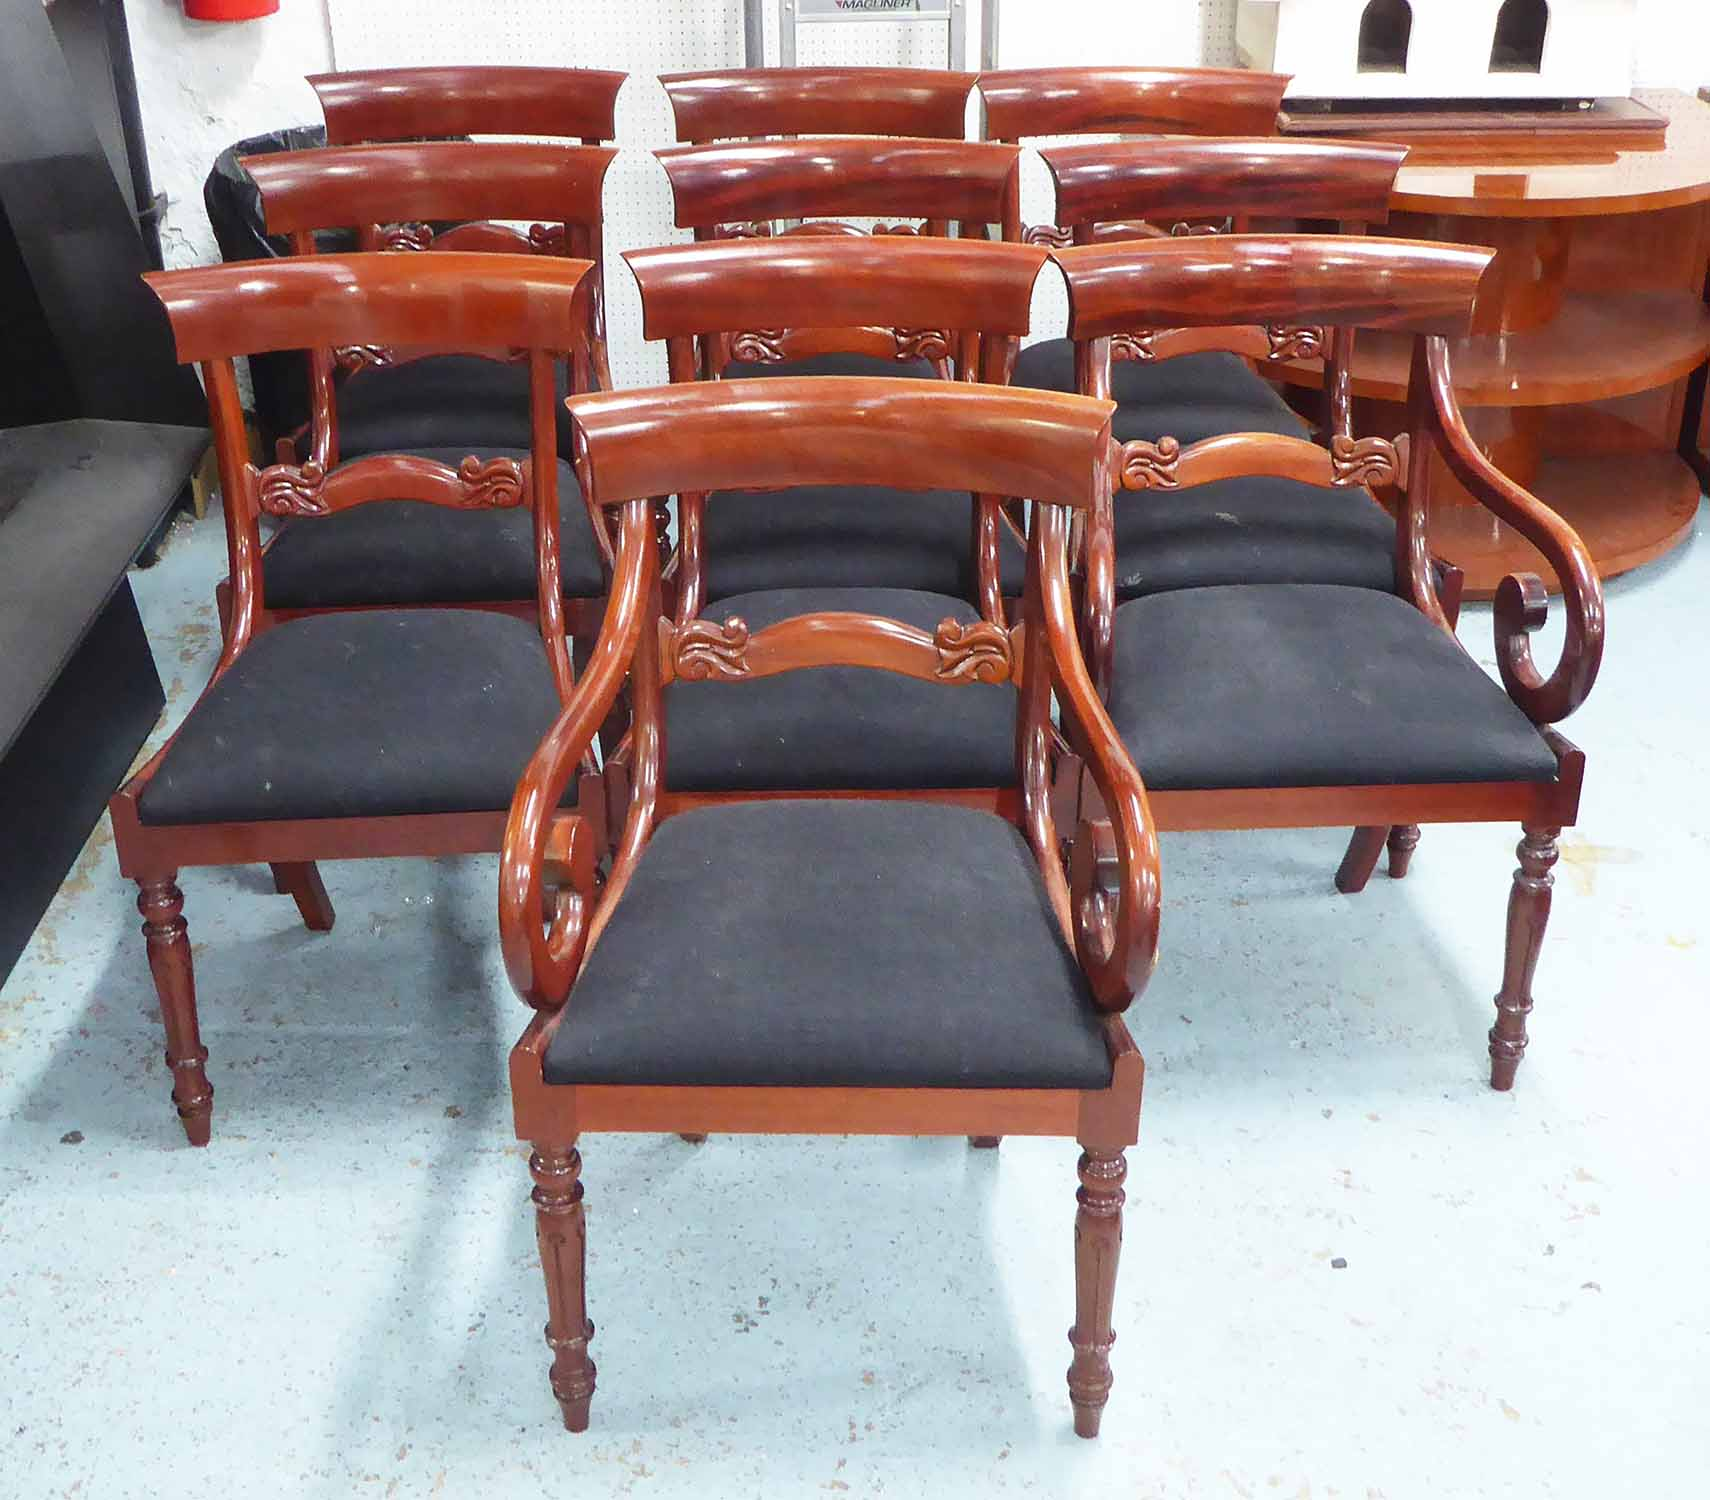 Lot 43 - DINING CHAIRS, a set of ten, including two carvers, William IV style, mahogany,